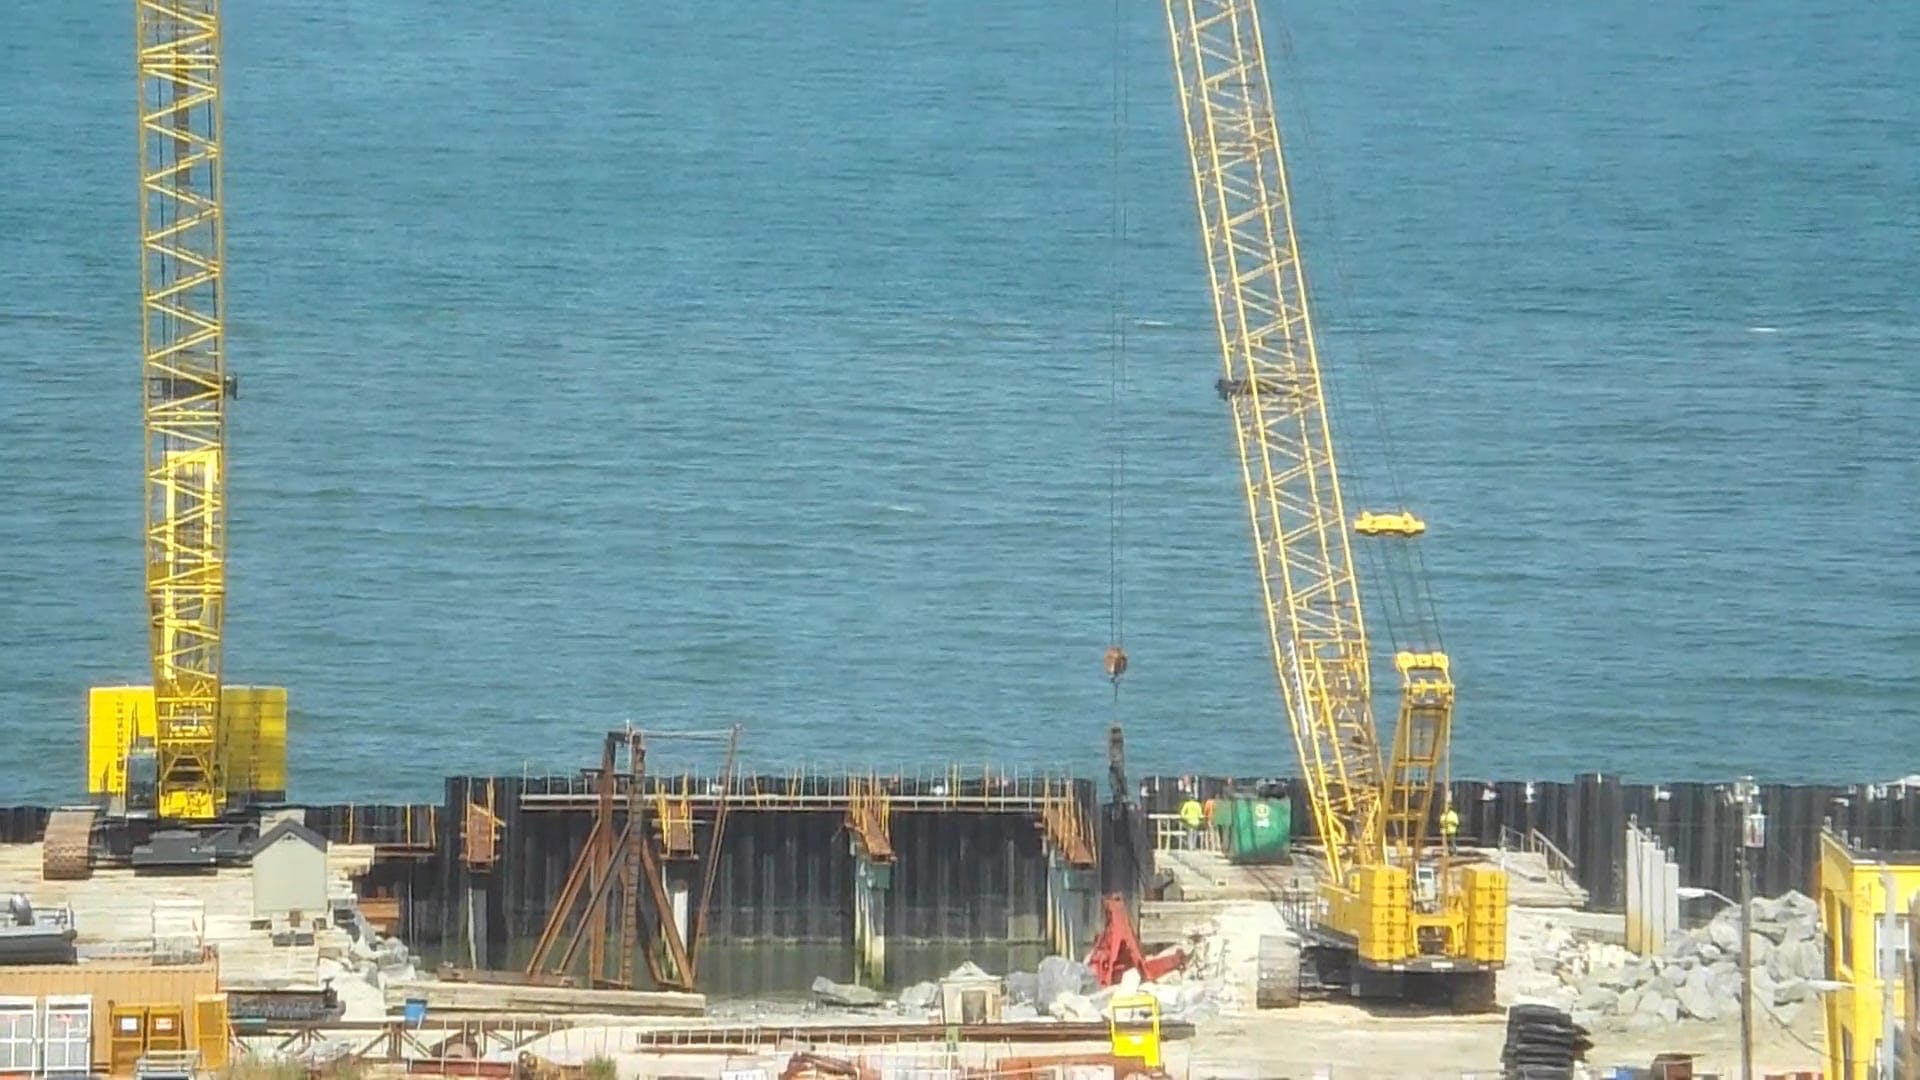 Construction Site Near The Sea